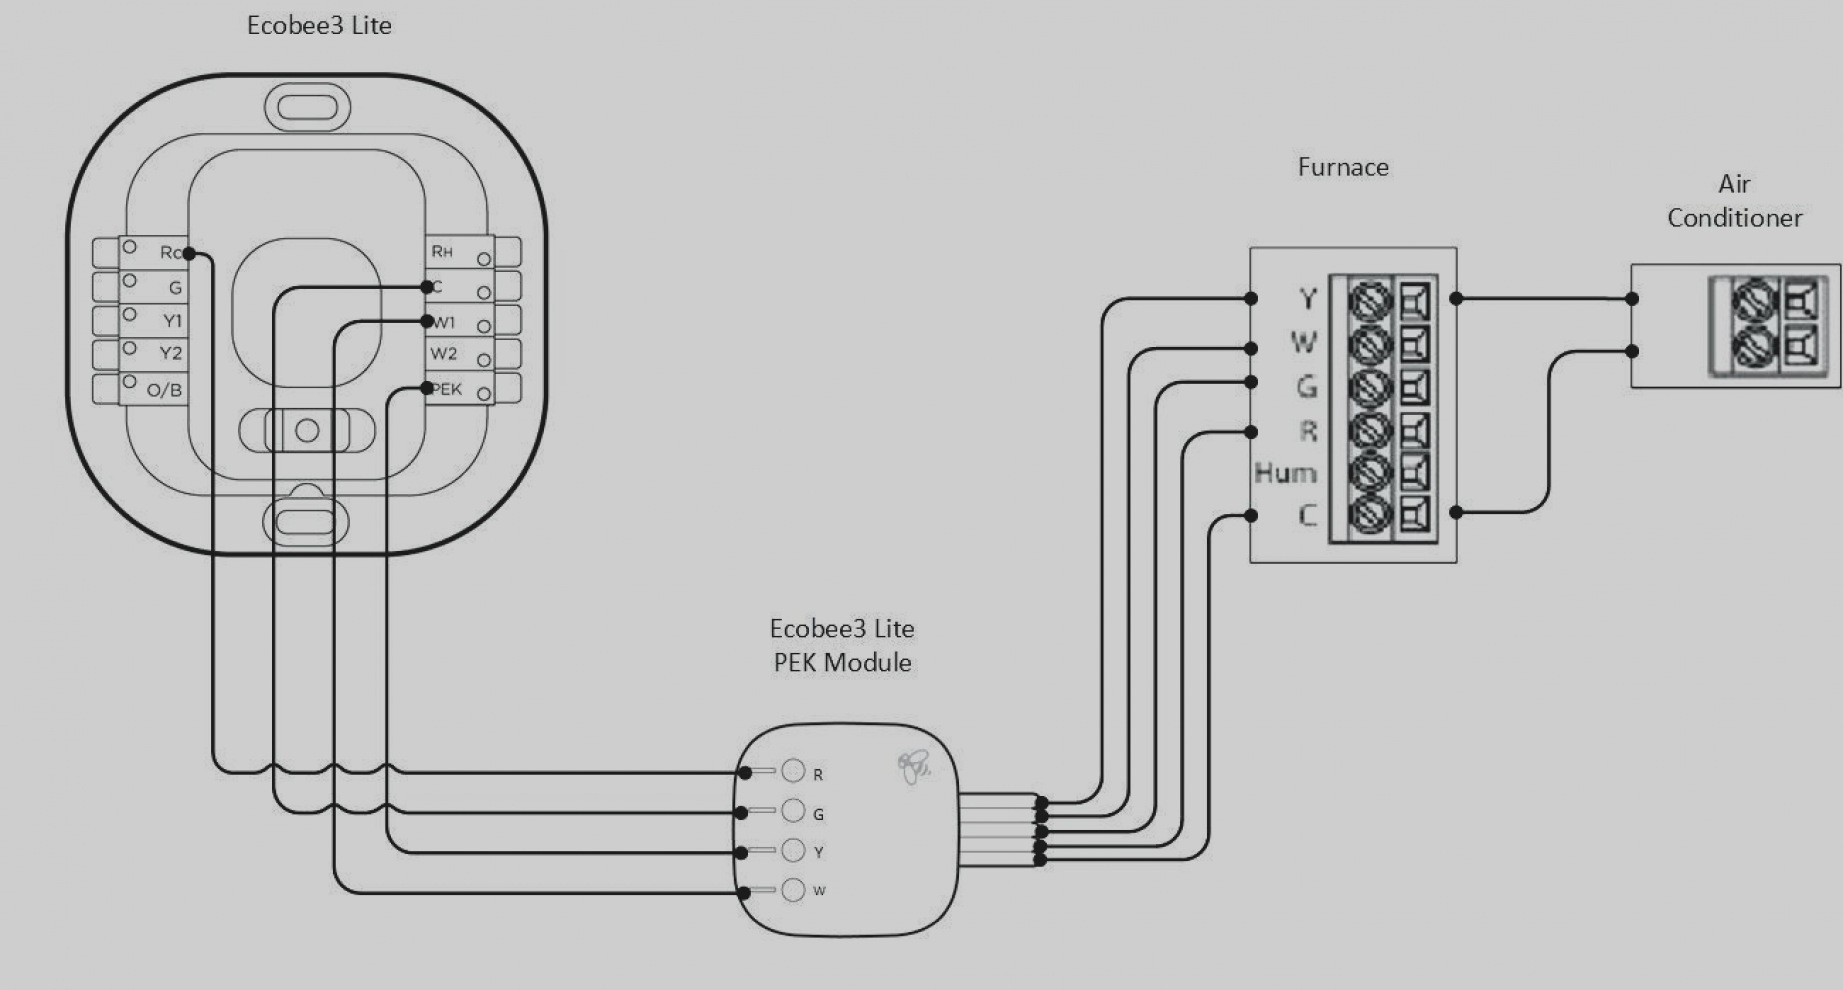 Nest Humidifier Wiring Diagram | Wiring Diagram Database on programmable thermostat for boiler, wireless thermostat for boiler, digital thermostat for boiler,